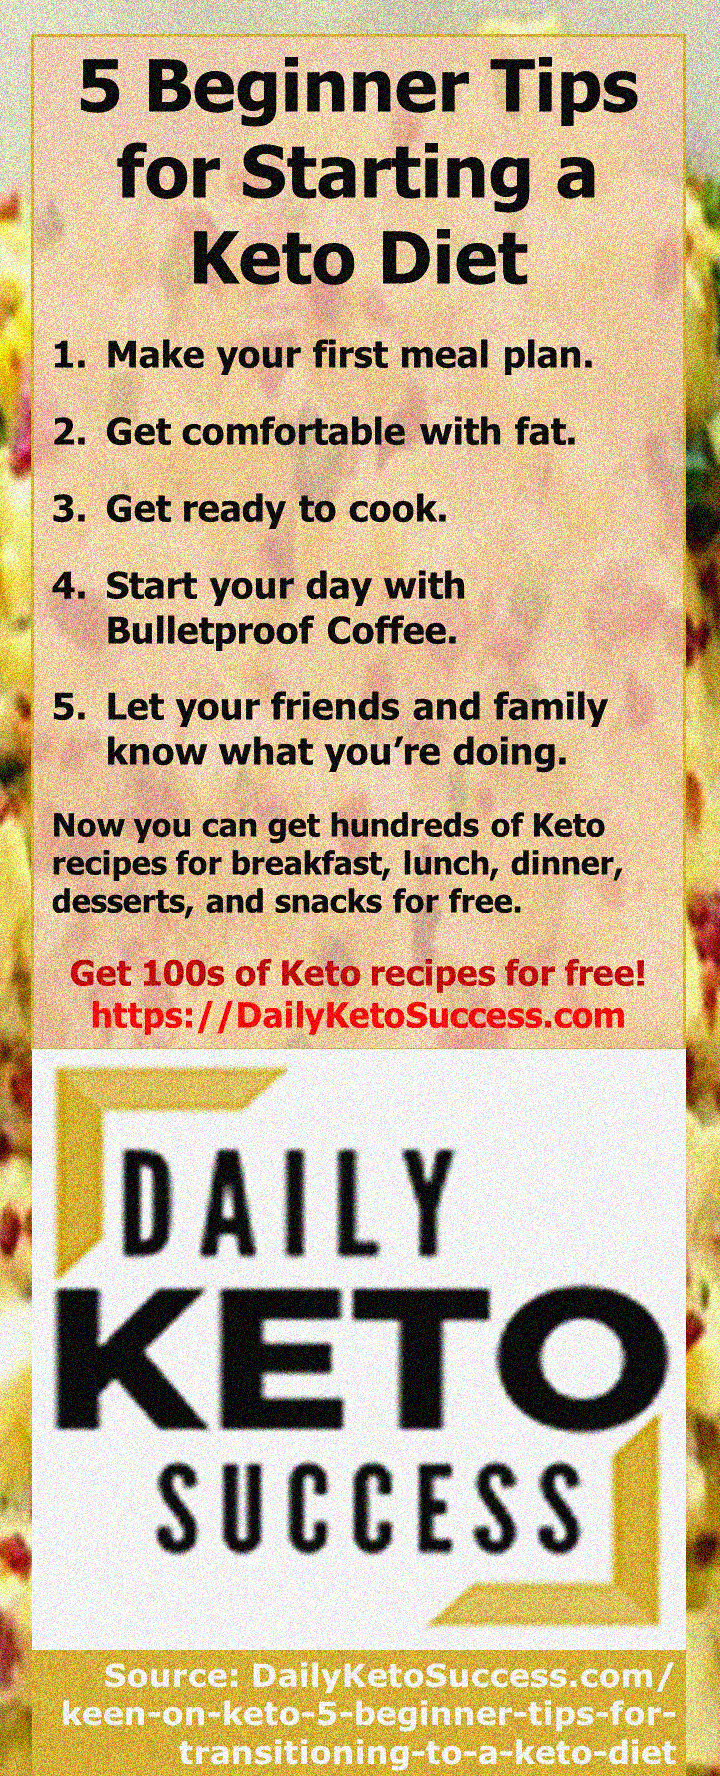 Keto - Daily Keto Success